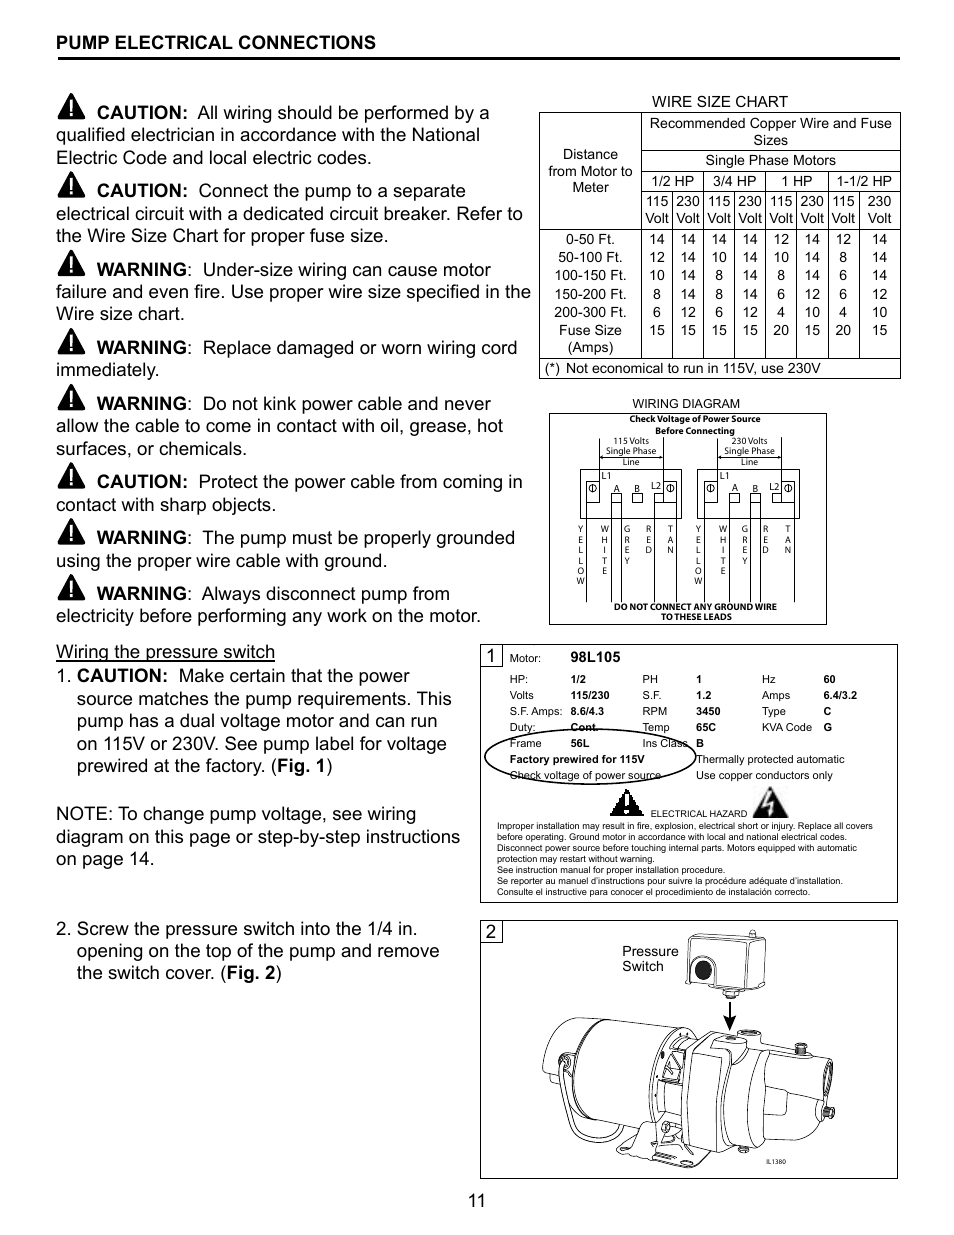 medium resolution of 11 pump electrical connections star water systems el10s user manual page 11 20